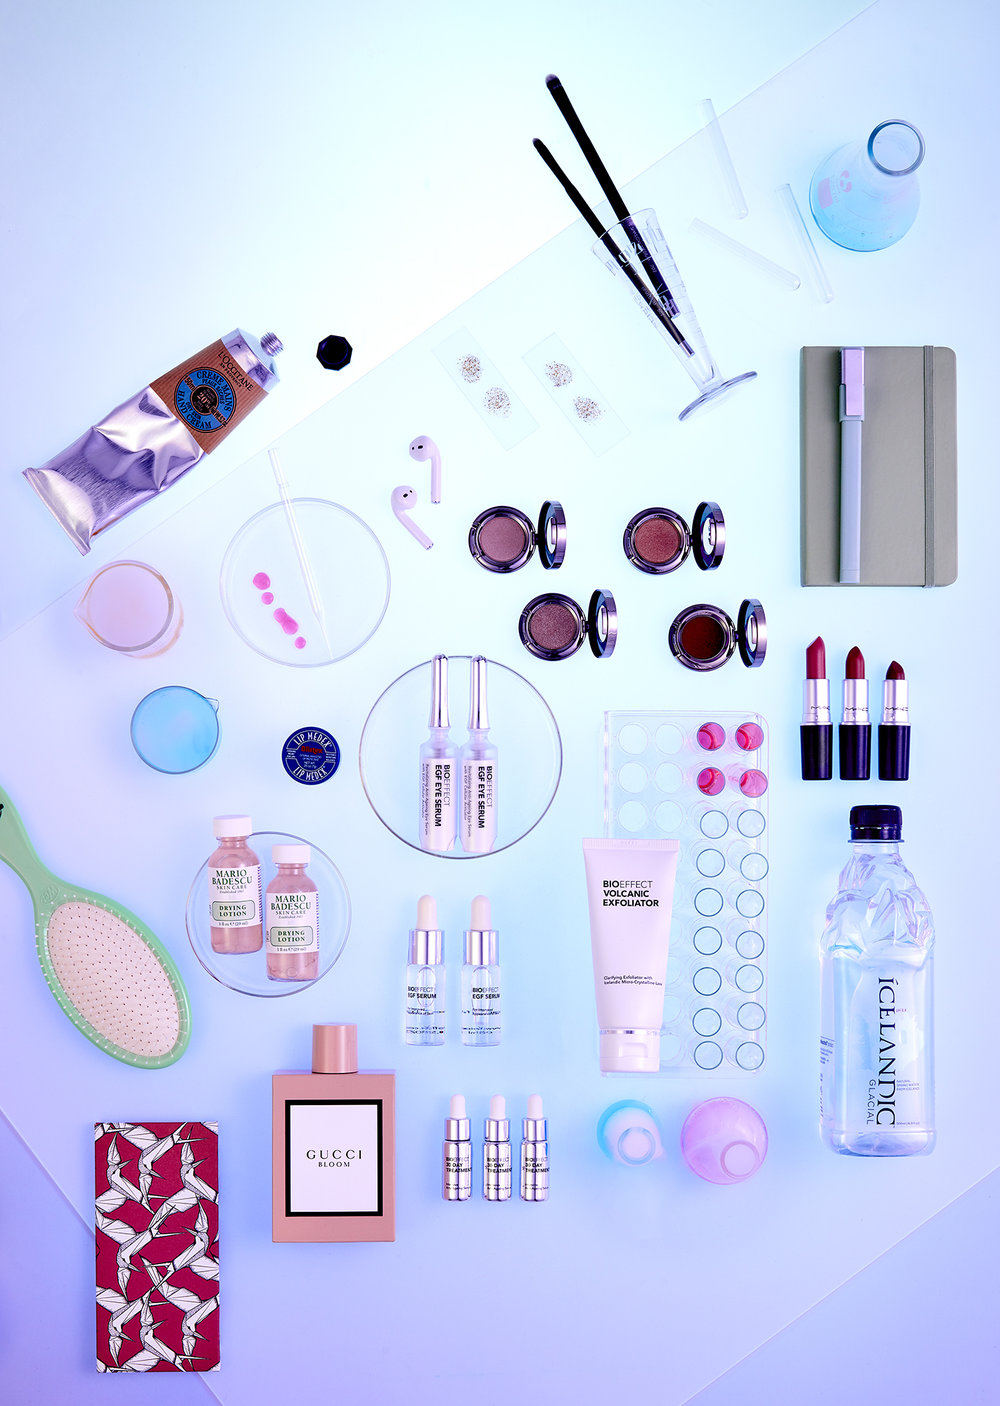 022018_Allure_DREAM KIT.jpg